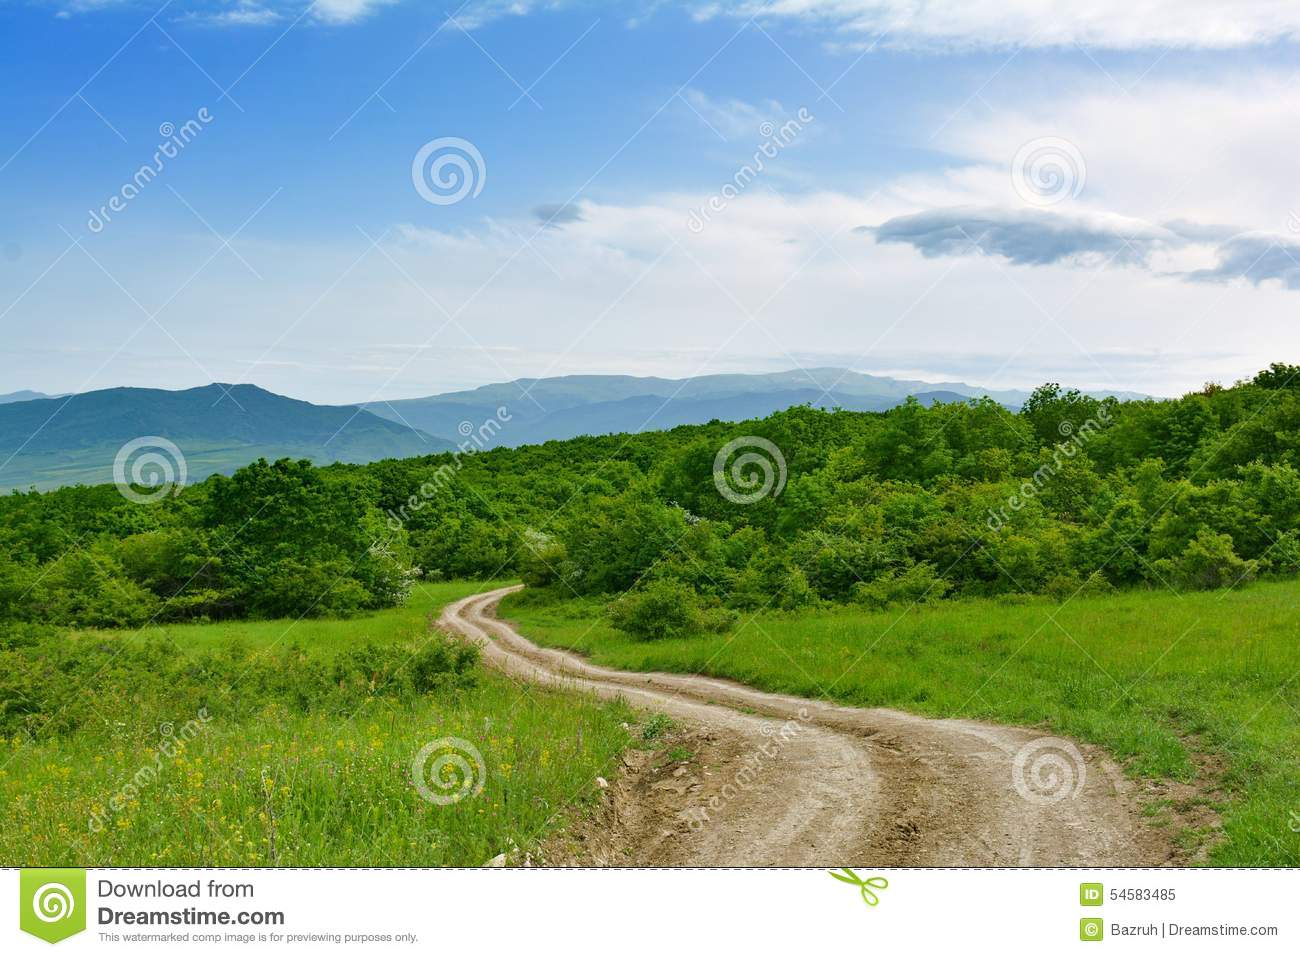 Landscape, dirt road